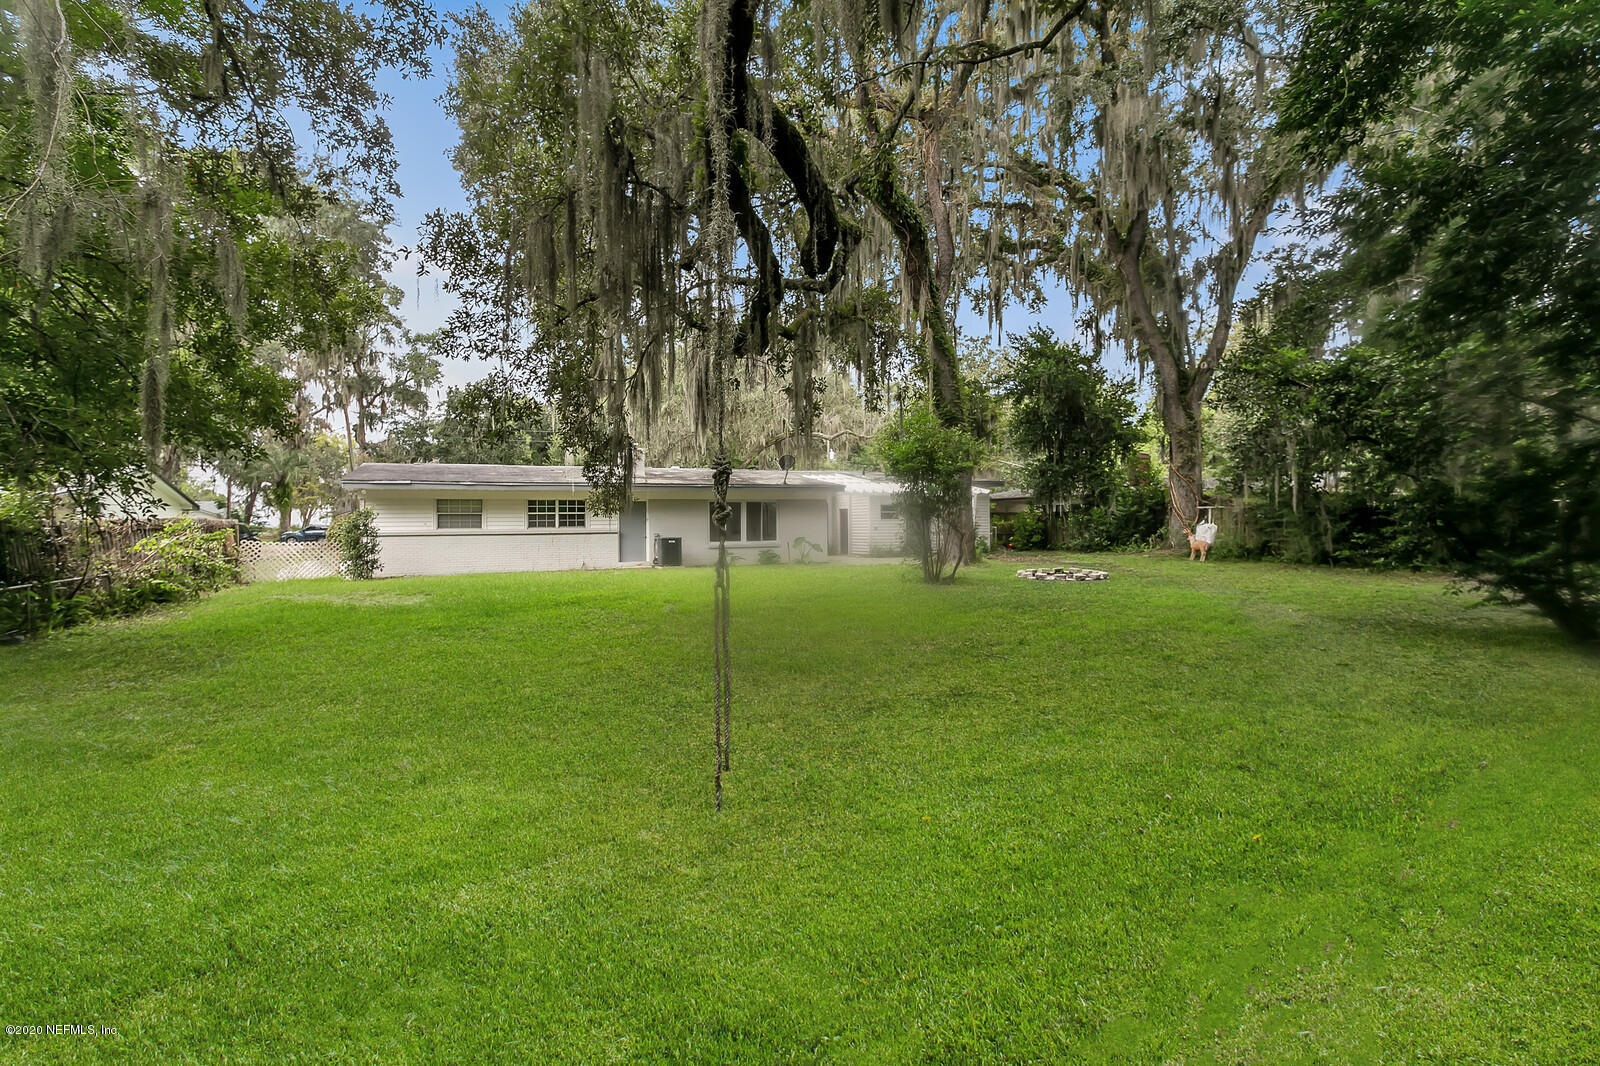 2553 HOLLY POINT, ORANGE PARK, FLORIDA 32073, 3 Bedrooms Bedrooms, ,2 BathroomsBathrooms,Residential,For sale,HOLLY POINT,1073111